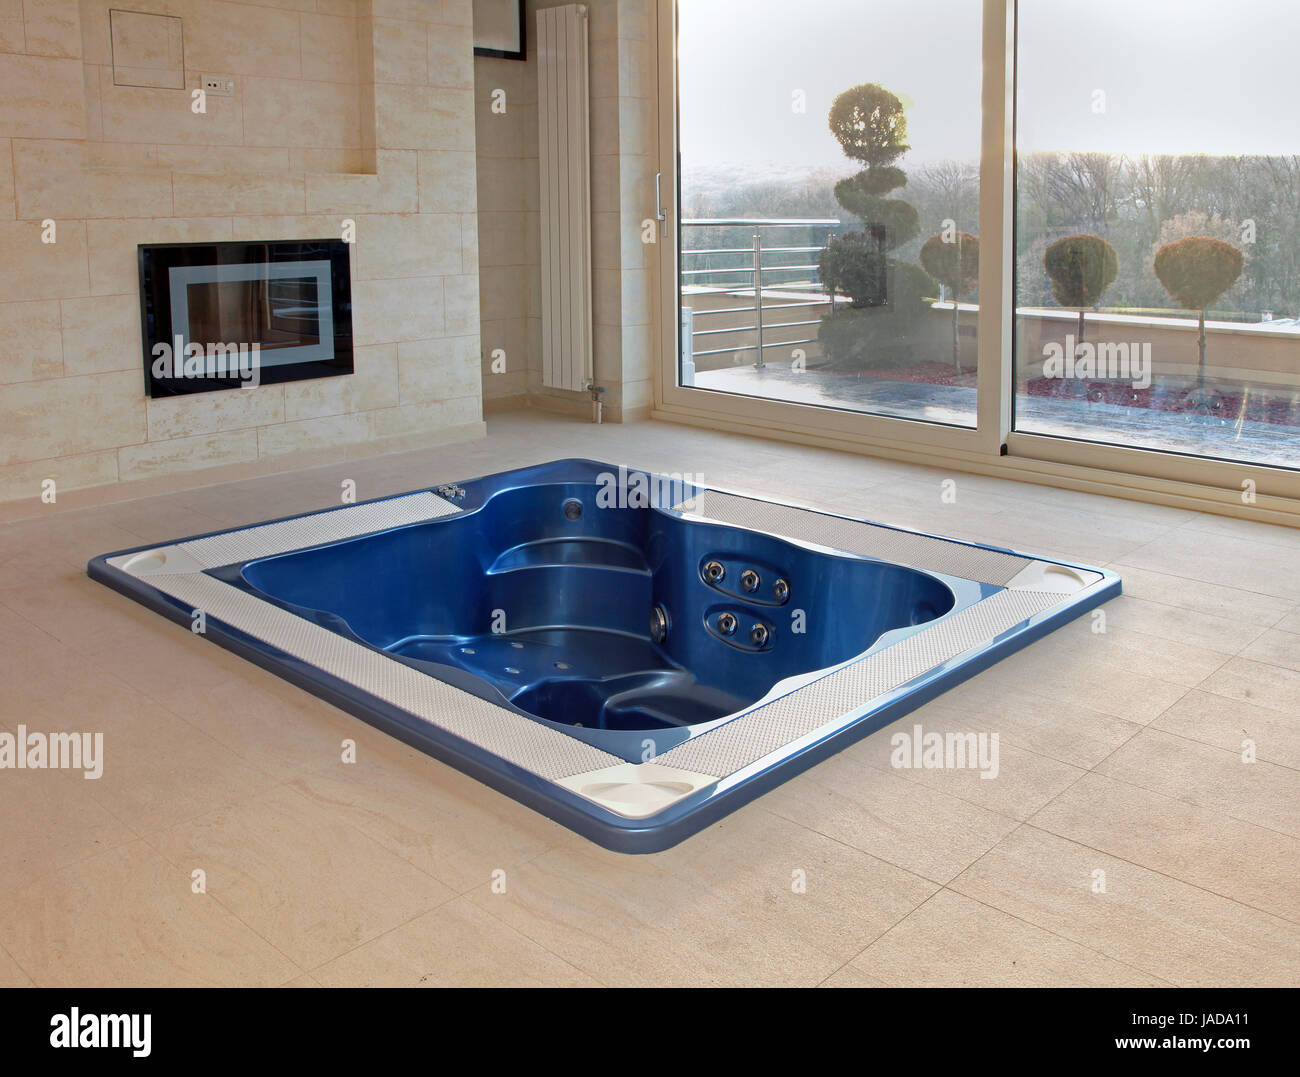 Large hot tub built in flor of room interior Stock Photo: 144122749 ...